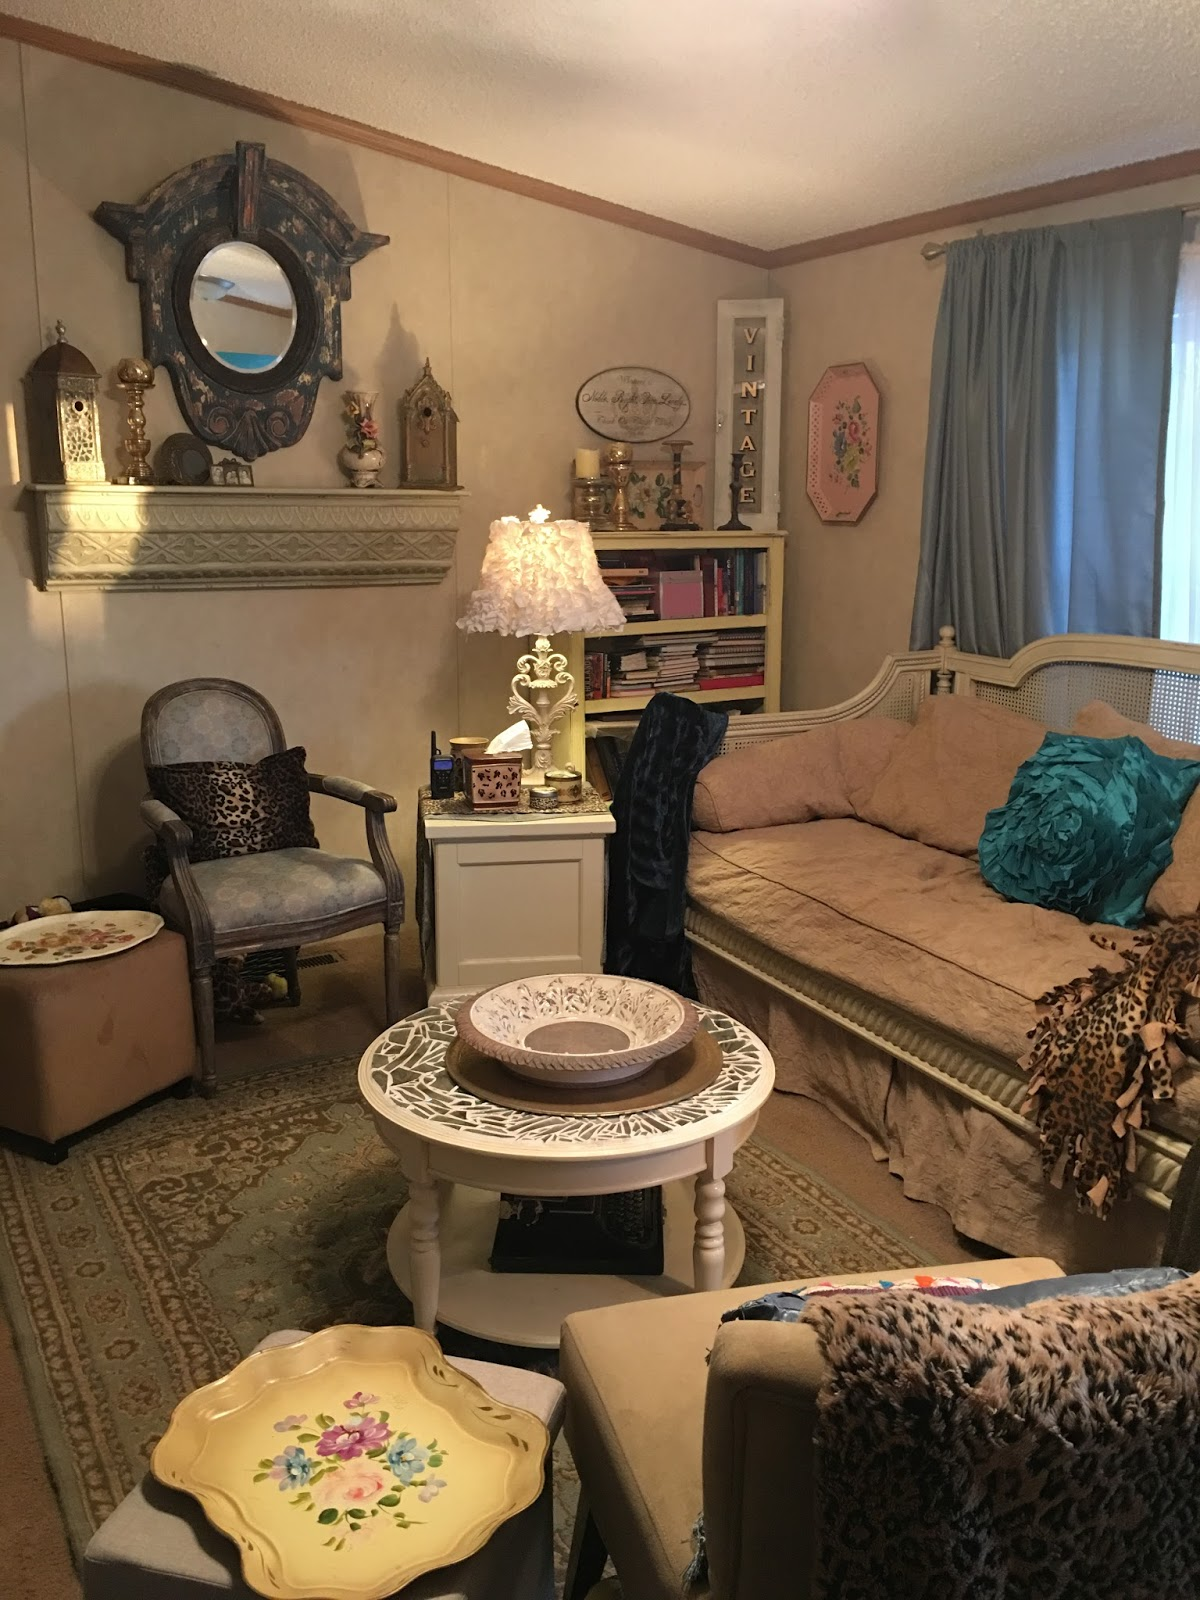 When I First Moved Here, The Soothing Shabby Chic Colors Were Appropriate  For My Life. Our Family Had A Series Of Deaths, And Iu0027d Lost My First Dog,  ...